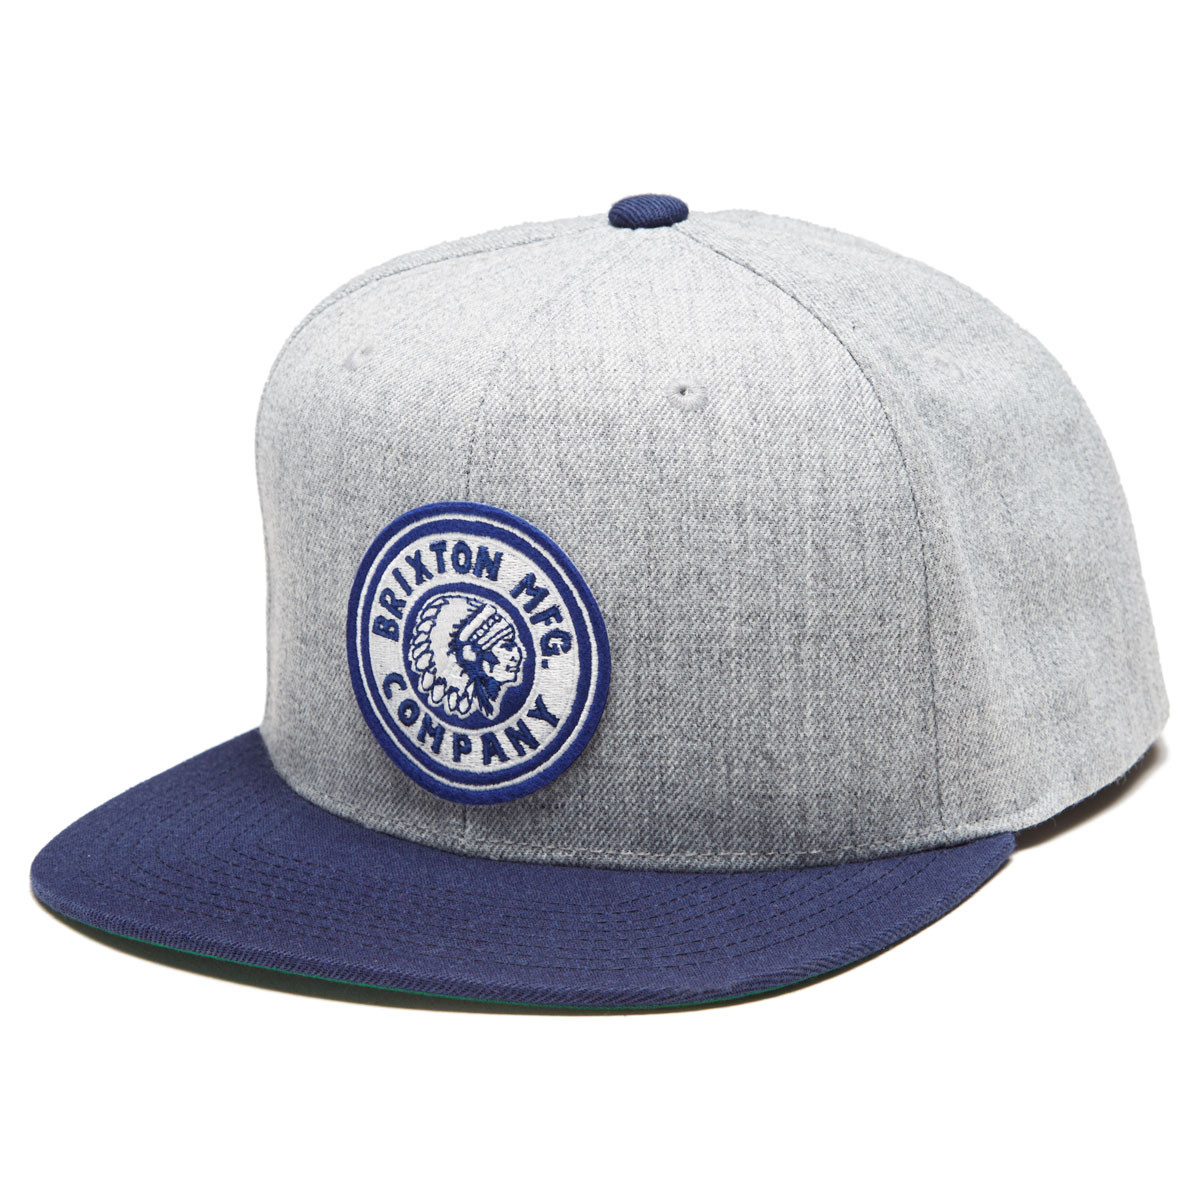 716633f3db22f Brixton Rival Snapback Hat - Heather Grey Navy